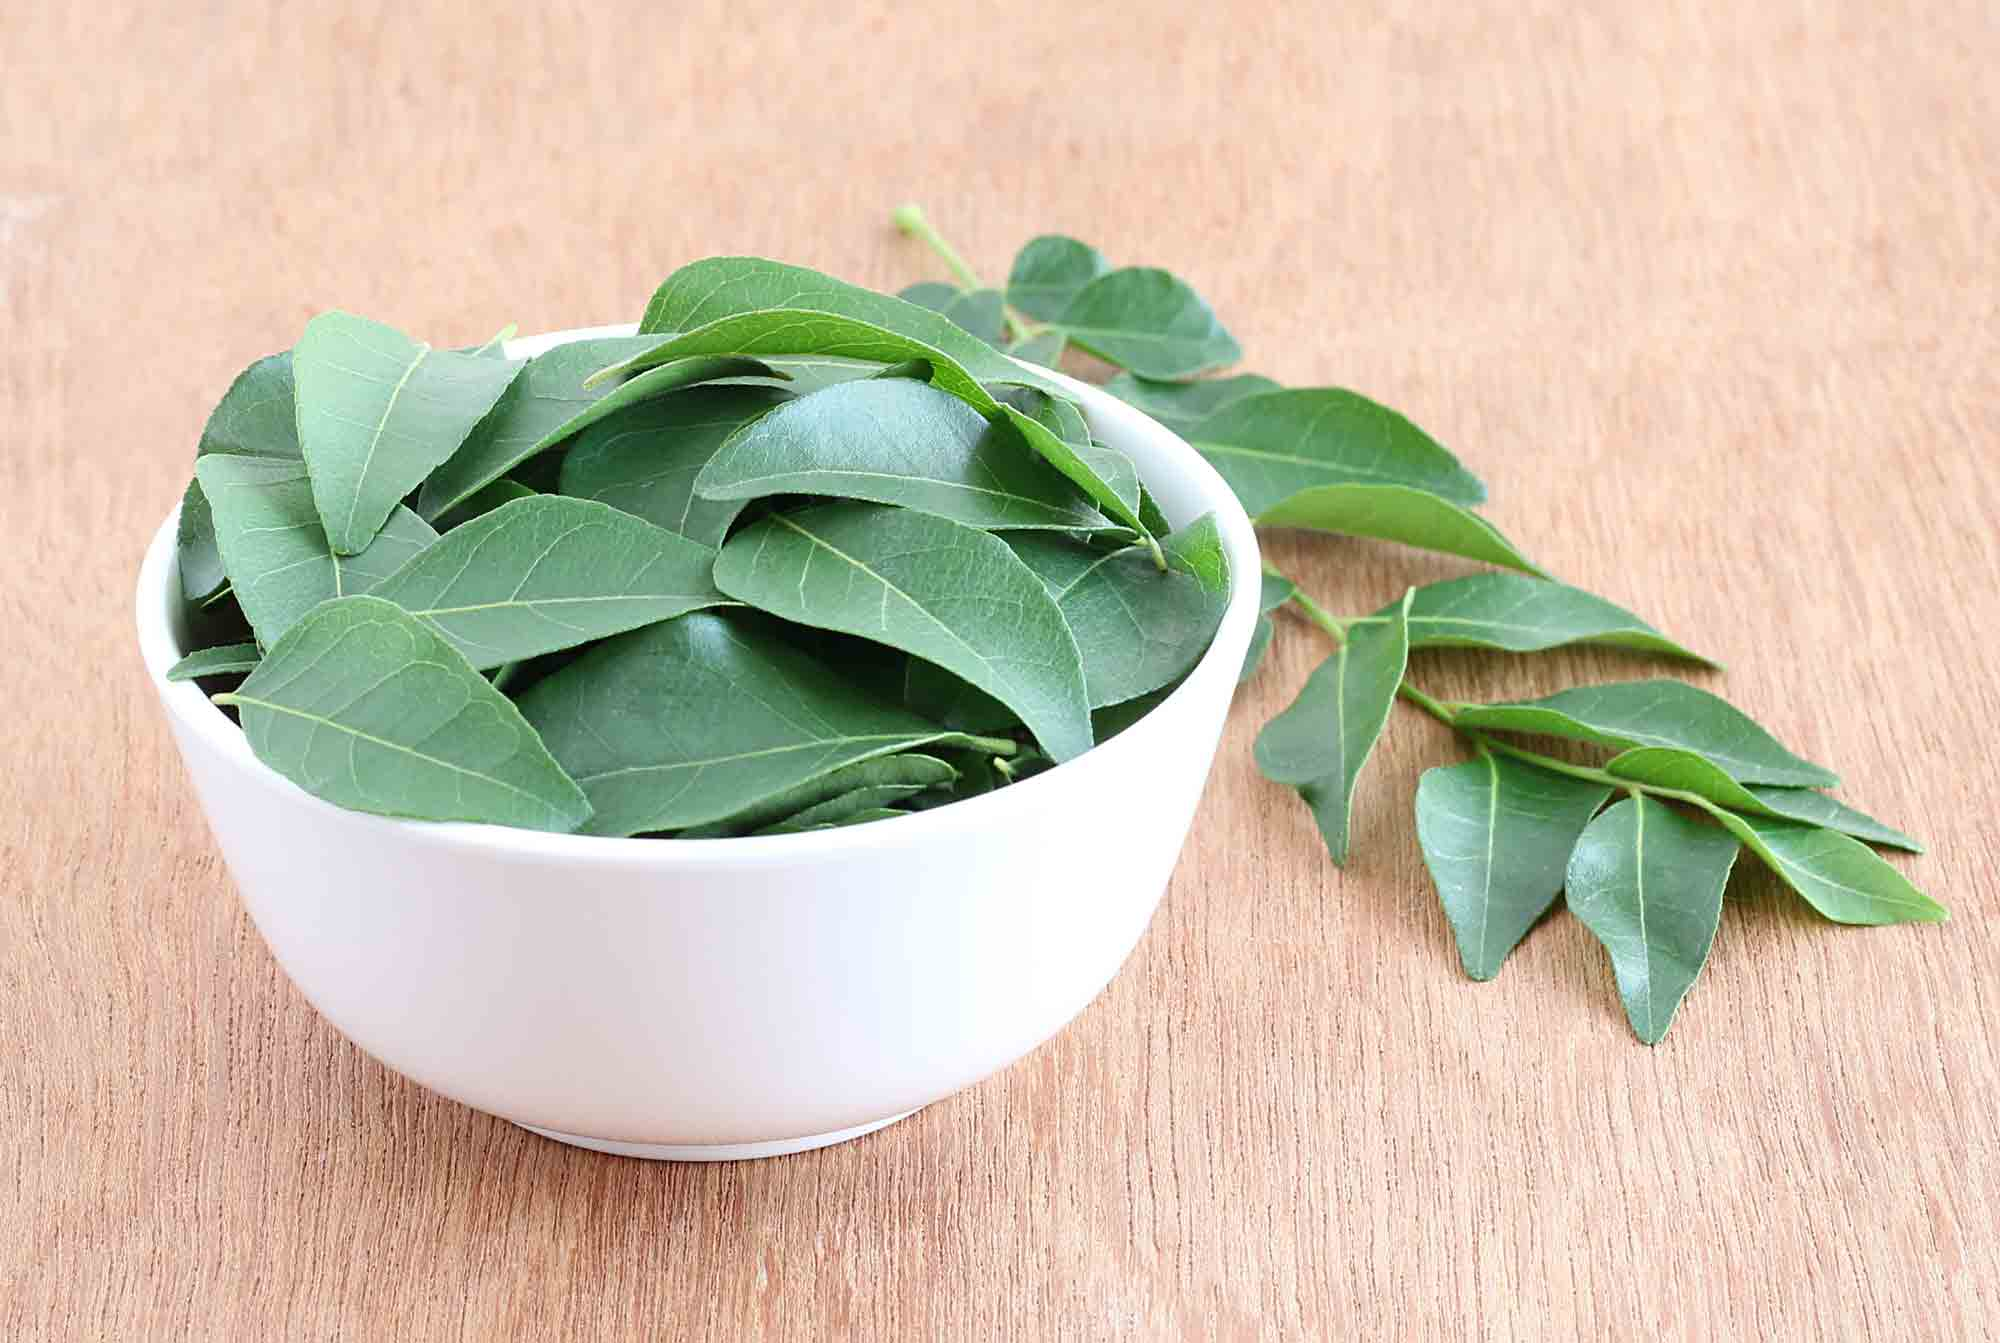 Green curry leaves in a bowl